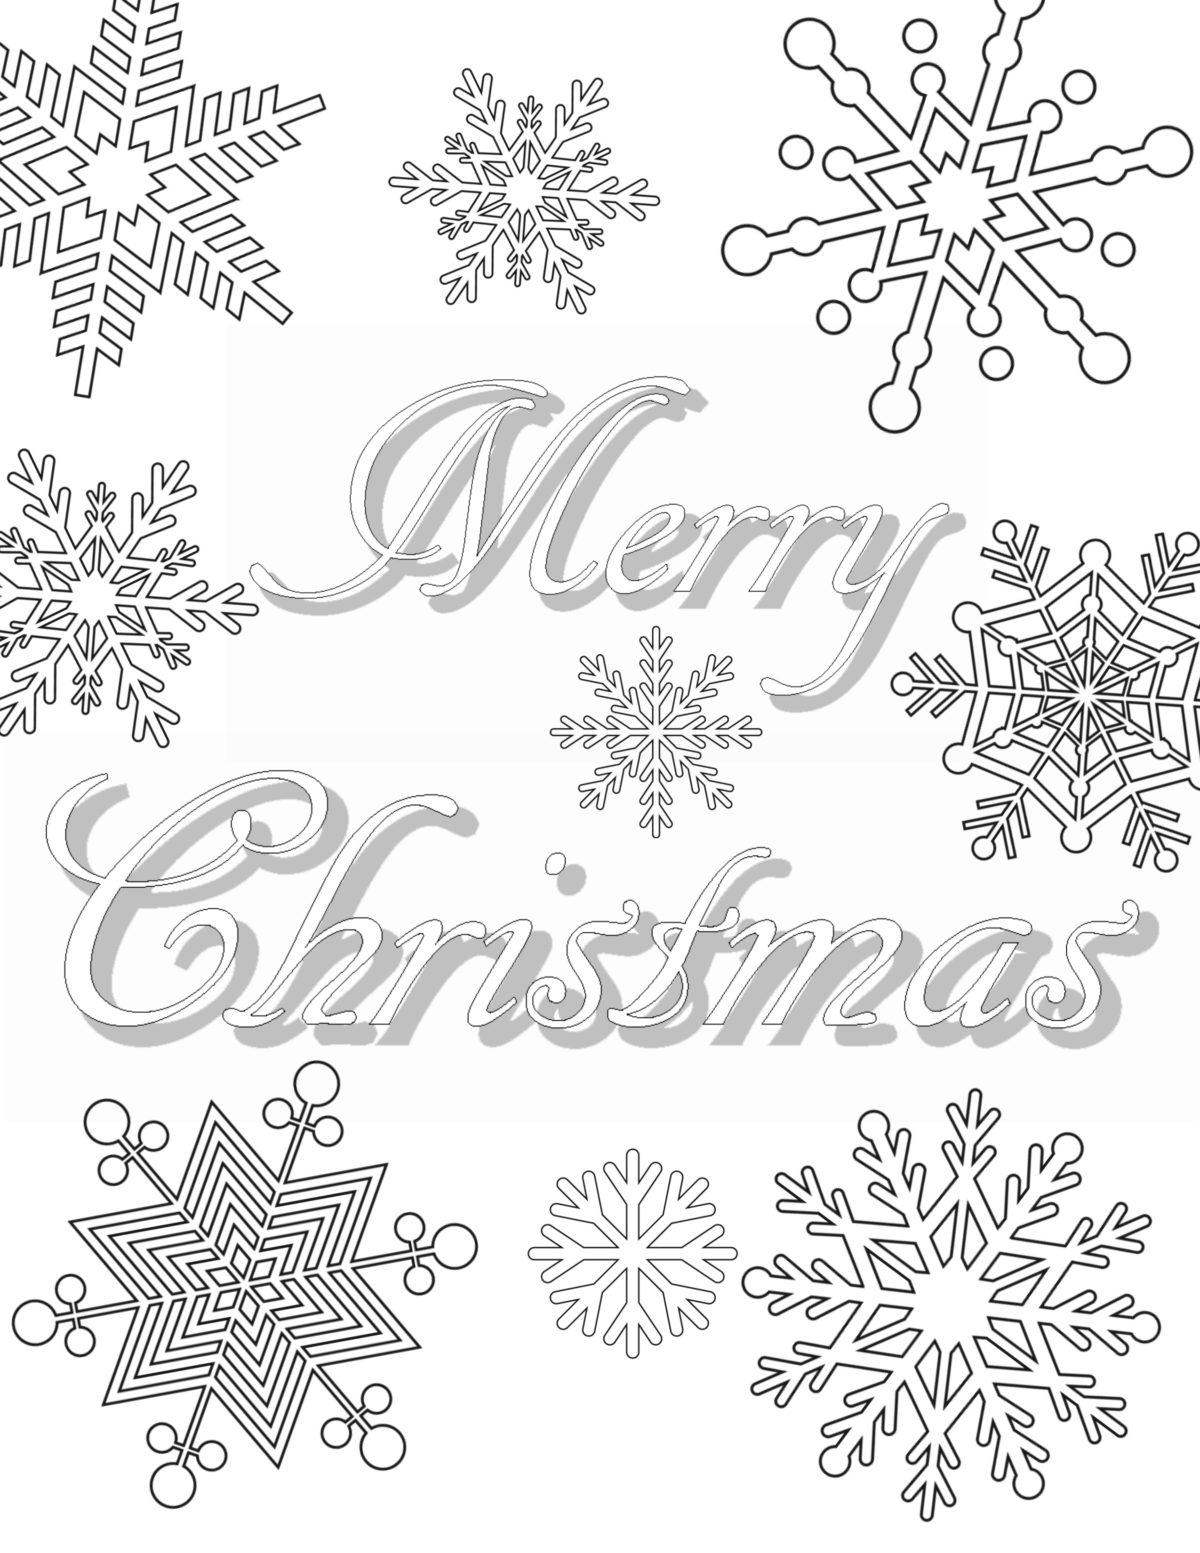 free printable coloring pages for adults and kids free printable christmas coloring pages for adults coloring free pages printable for and adults kids